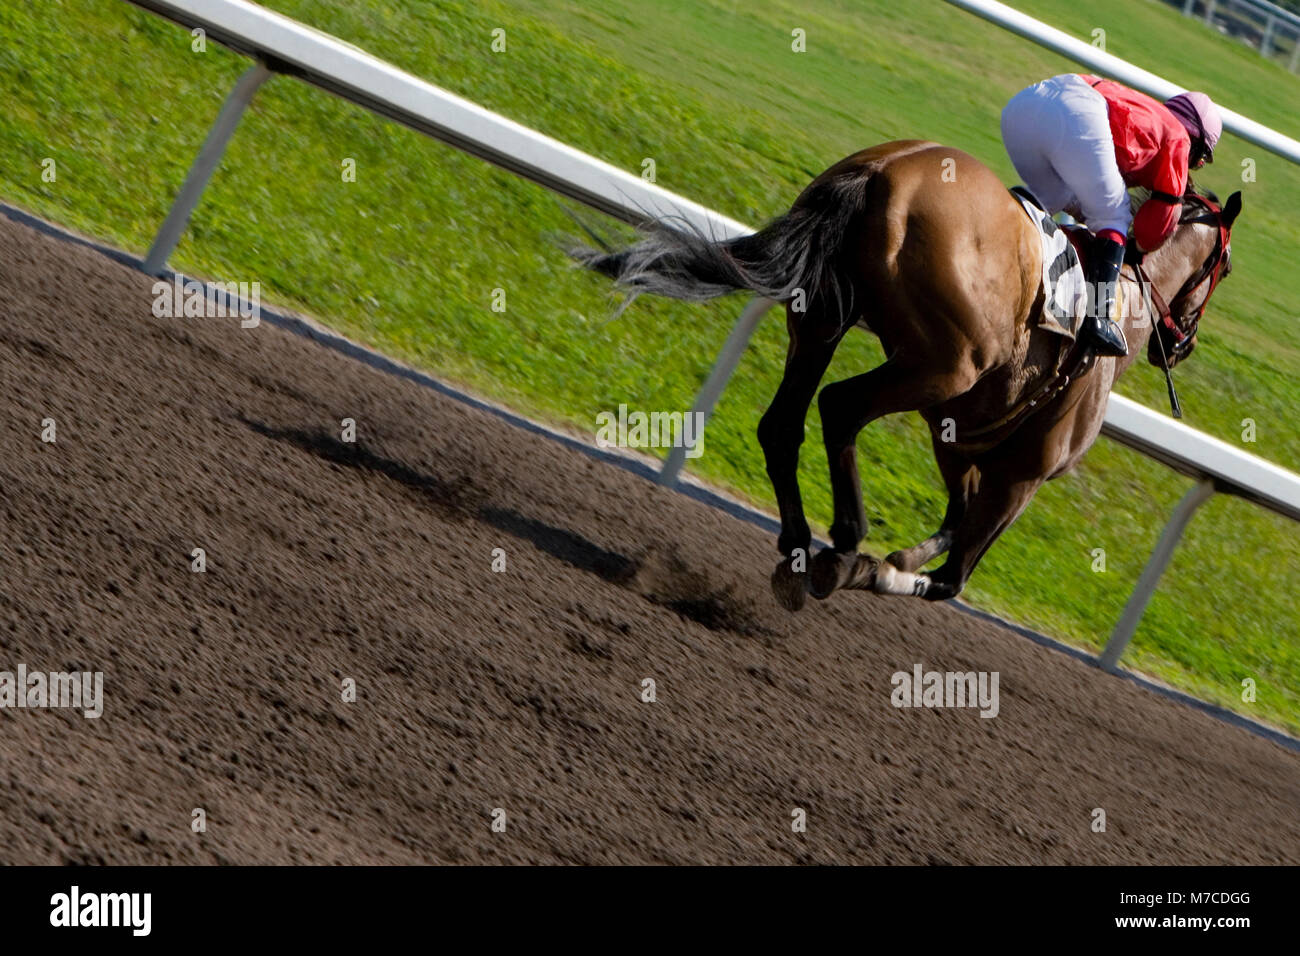 Jockey riding a horse in a horse race - Stock Image